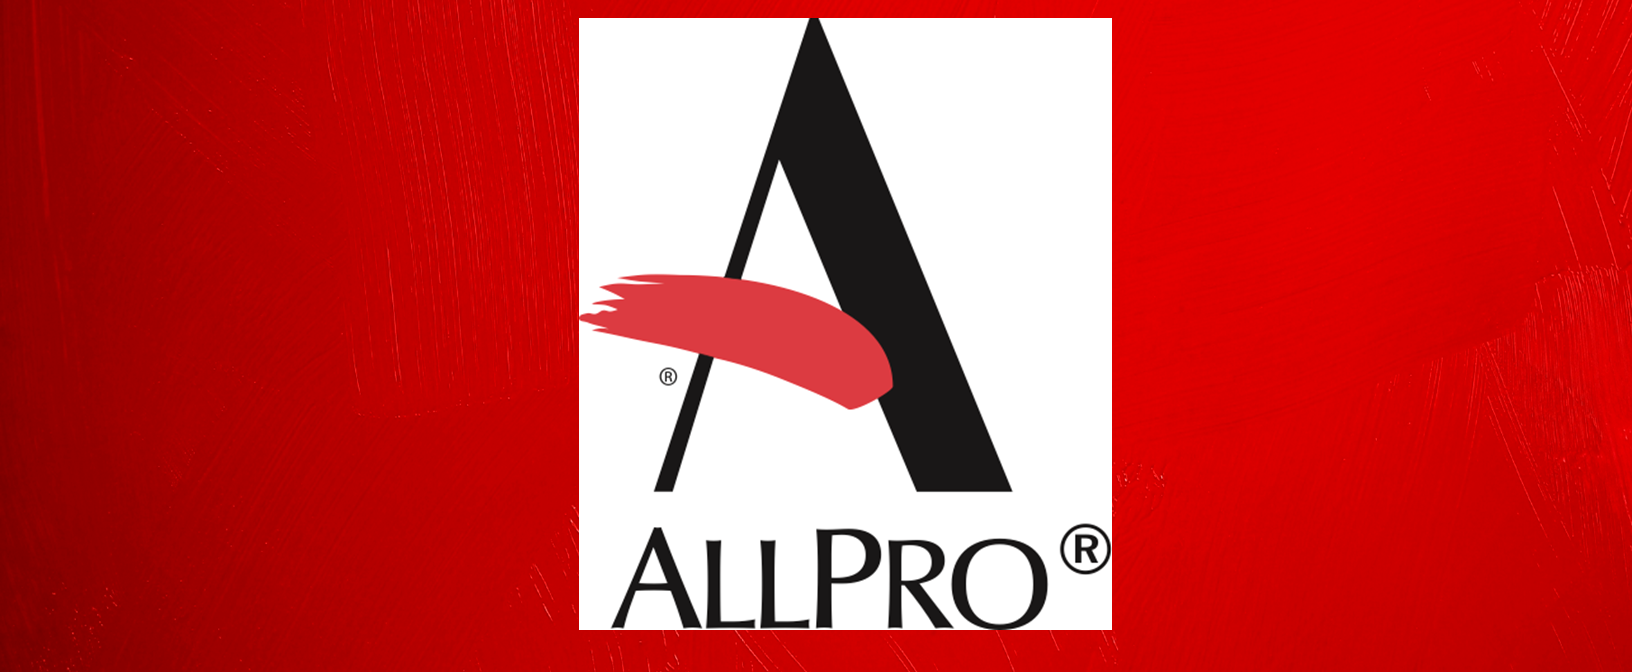 Brandmark Advertising Produces ALLPRO Corporate Video